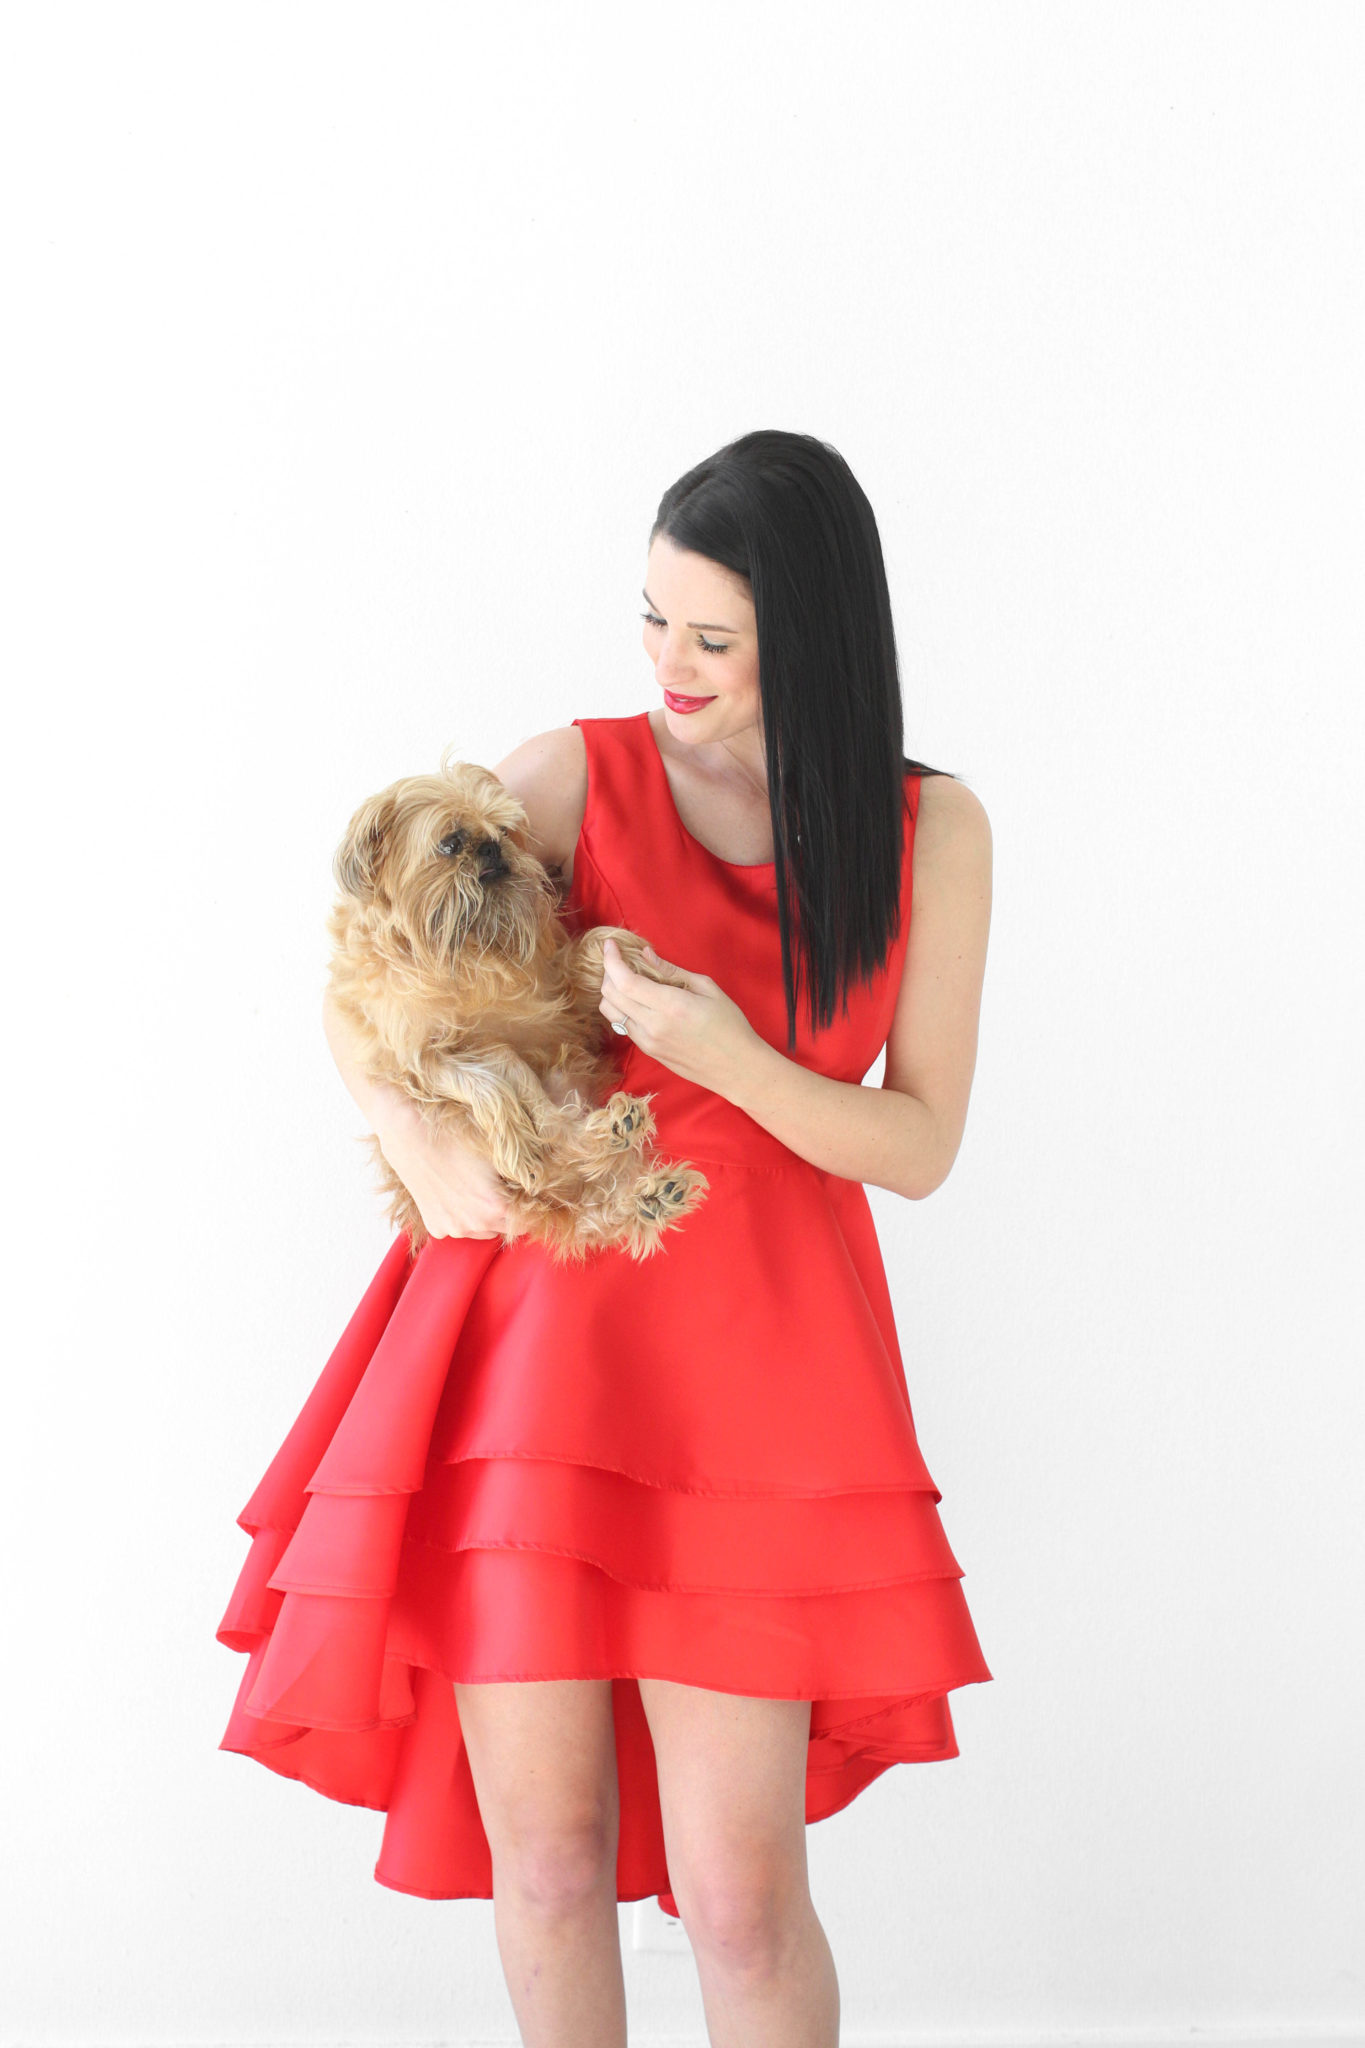 12 Must Have Little Red Dresses for Galentine's Day | classy red dresses | red dress outfit | valentine's day outfit | Valentine's Day dress || Dressed to Kill #reddress #valentinedress #valentineoutfit - 12 Little Red Dresses for Galentine's Day by popular Austin fashion blogger Dressed to Kill